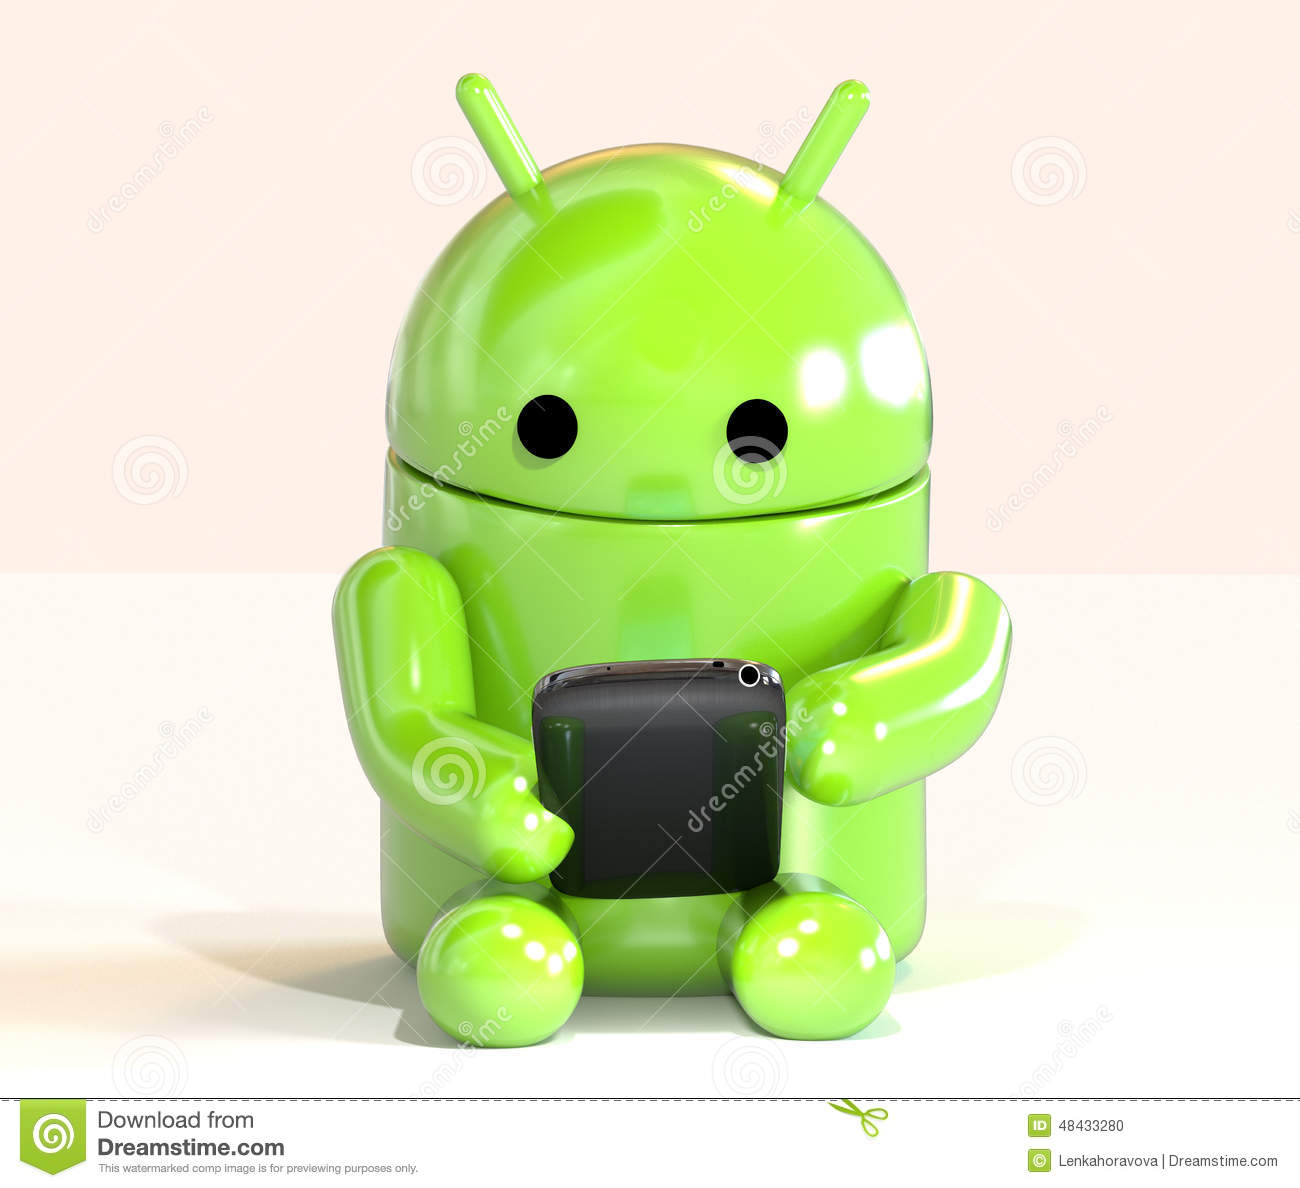 Google Android OS mascot robot using smartphone isolated on white background